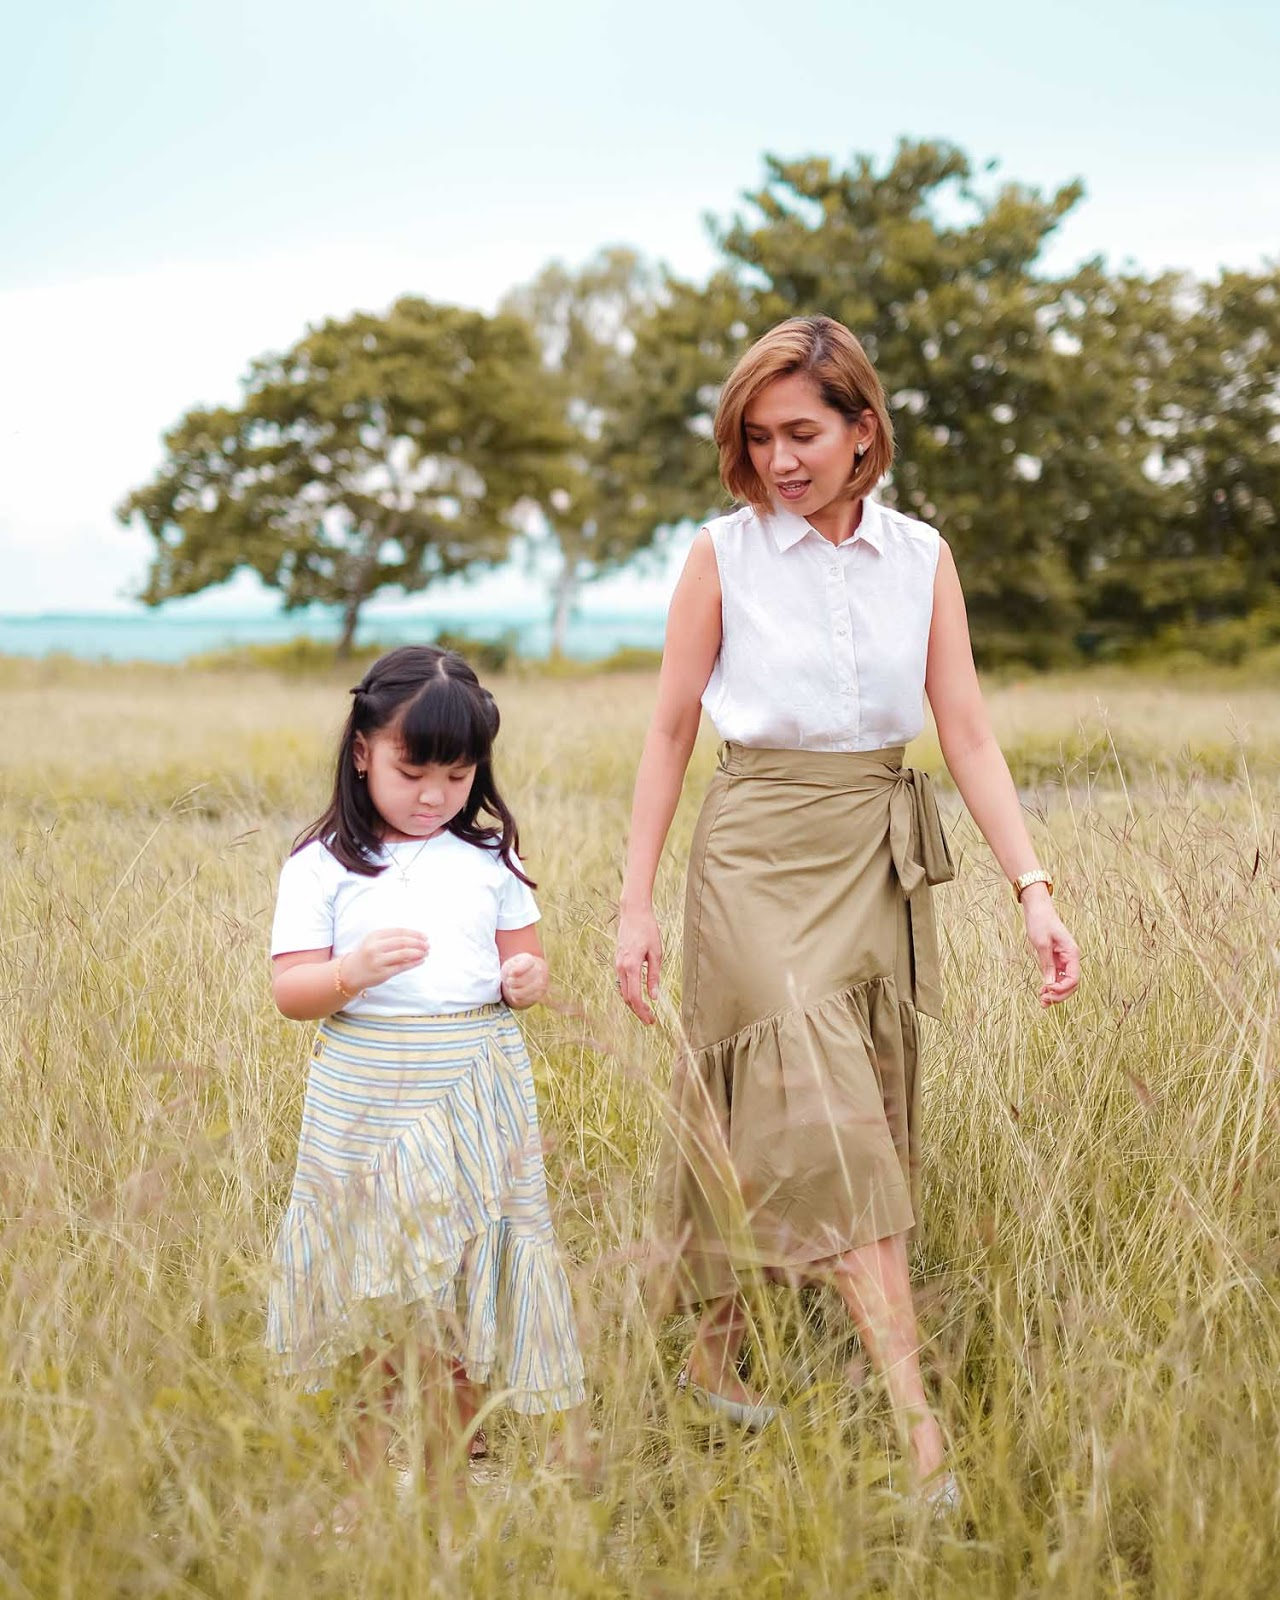 Mommy wardrobe must-haves, how to build a capsule wardrobe, cebu mommy blogger, cebu fashion blogger, wrap skirt, cebu blogger